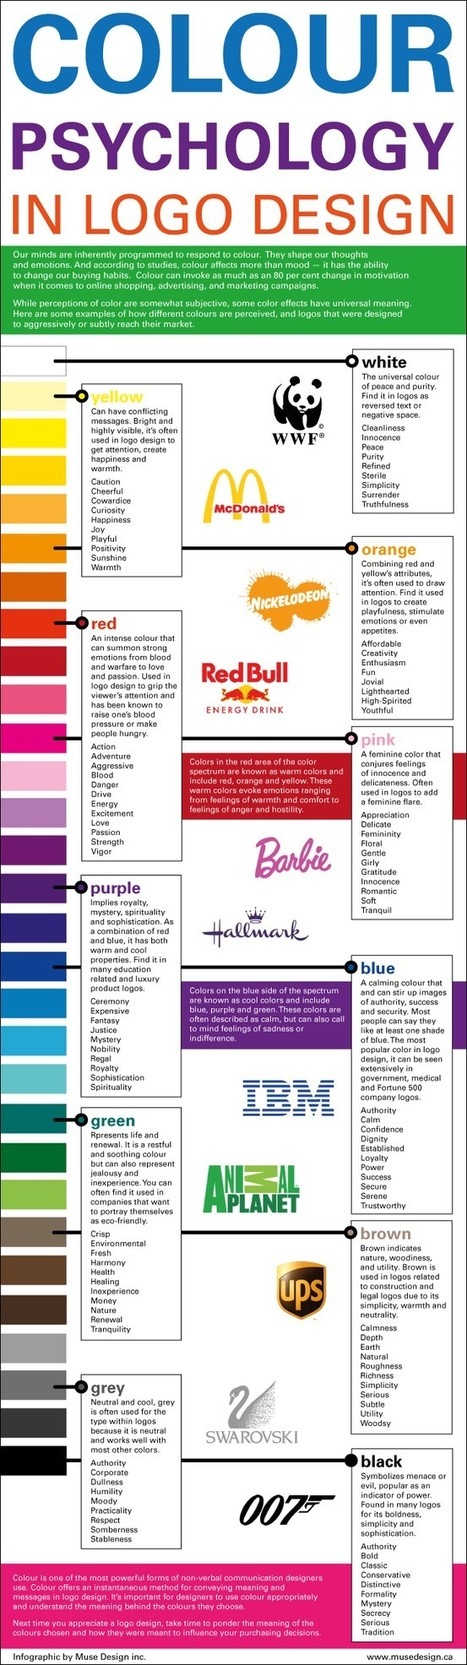 Colour Psychology in Logo Design | Infographic | social media infographics and typography | Scoop.it